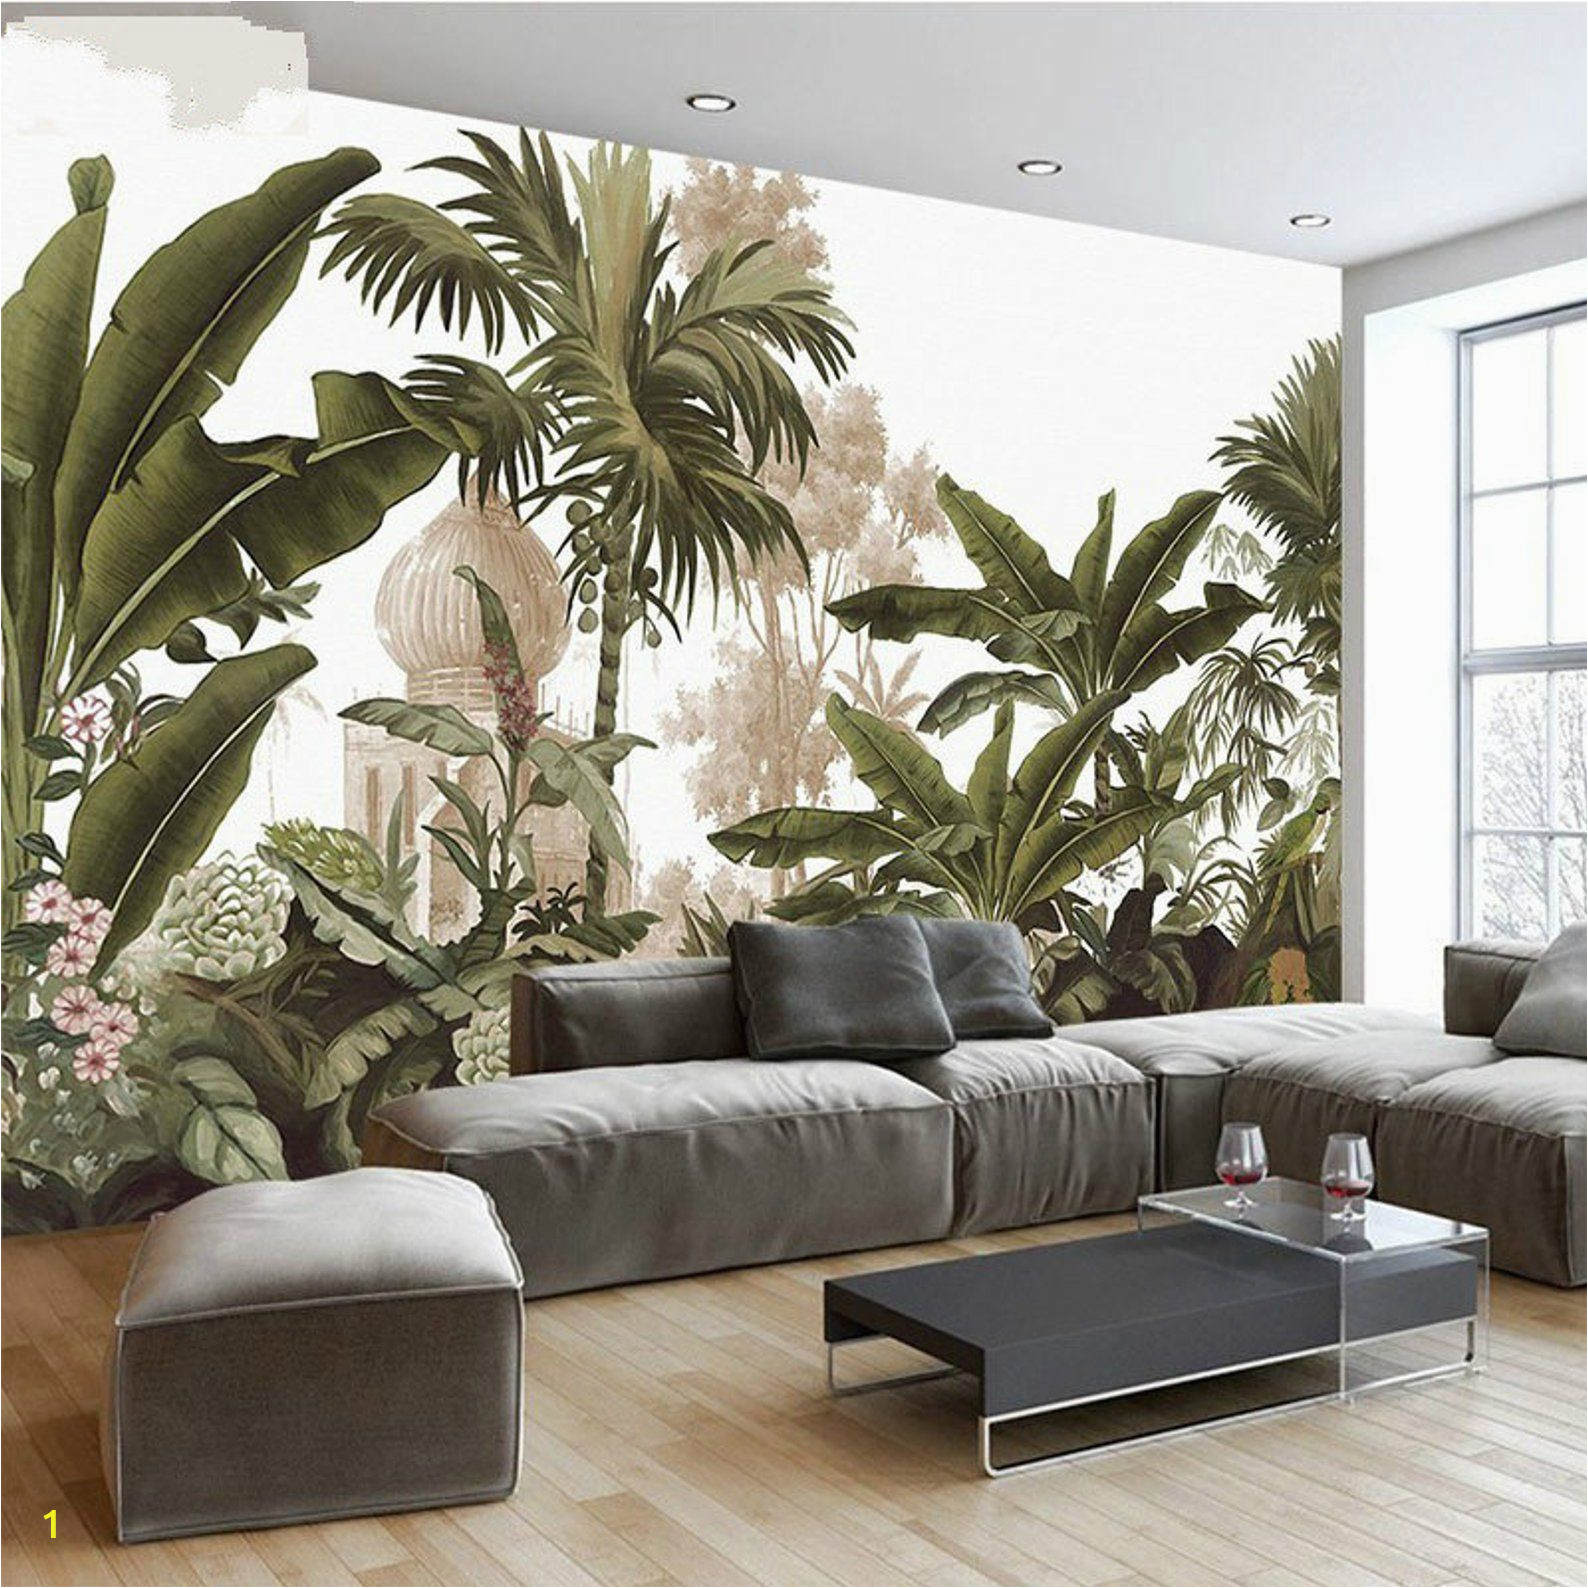 Rain forest Wall Mural Hand Painted Tropical Rainforest forest Wallpaper Wall Mural